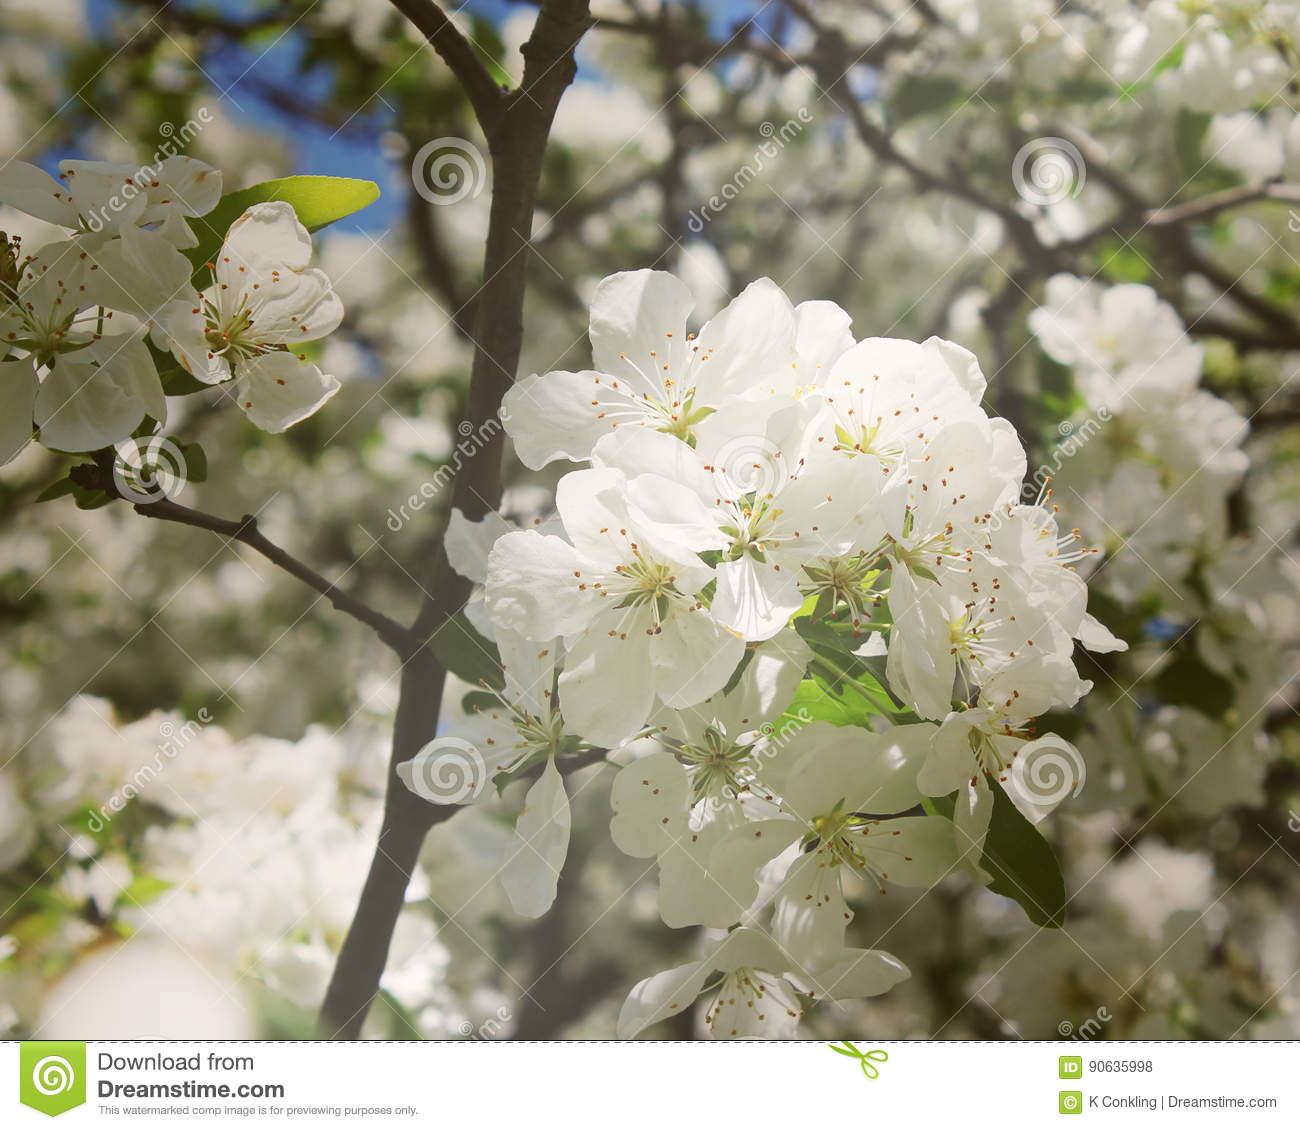 White Flowers On A Tree With Tiny Seeds In The Middle Stock Photo